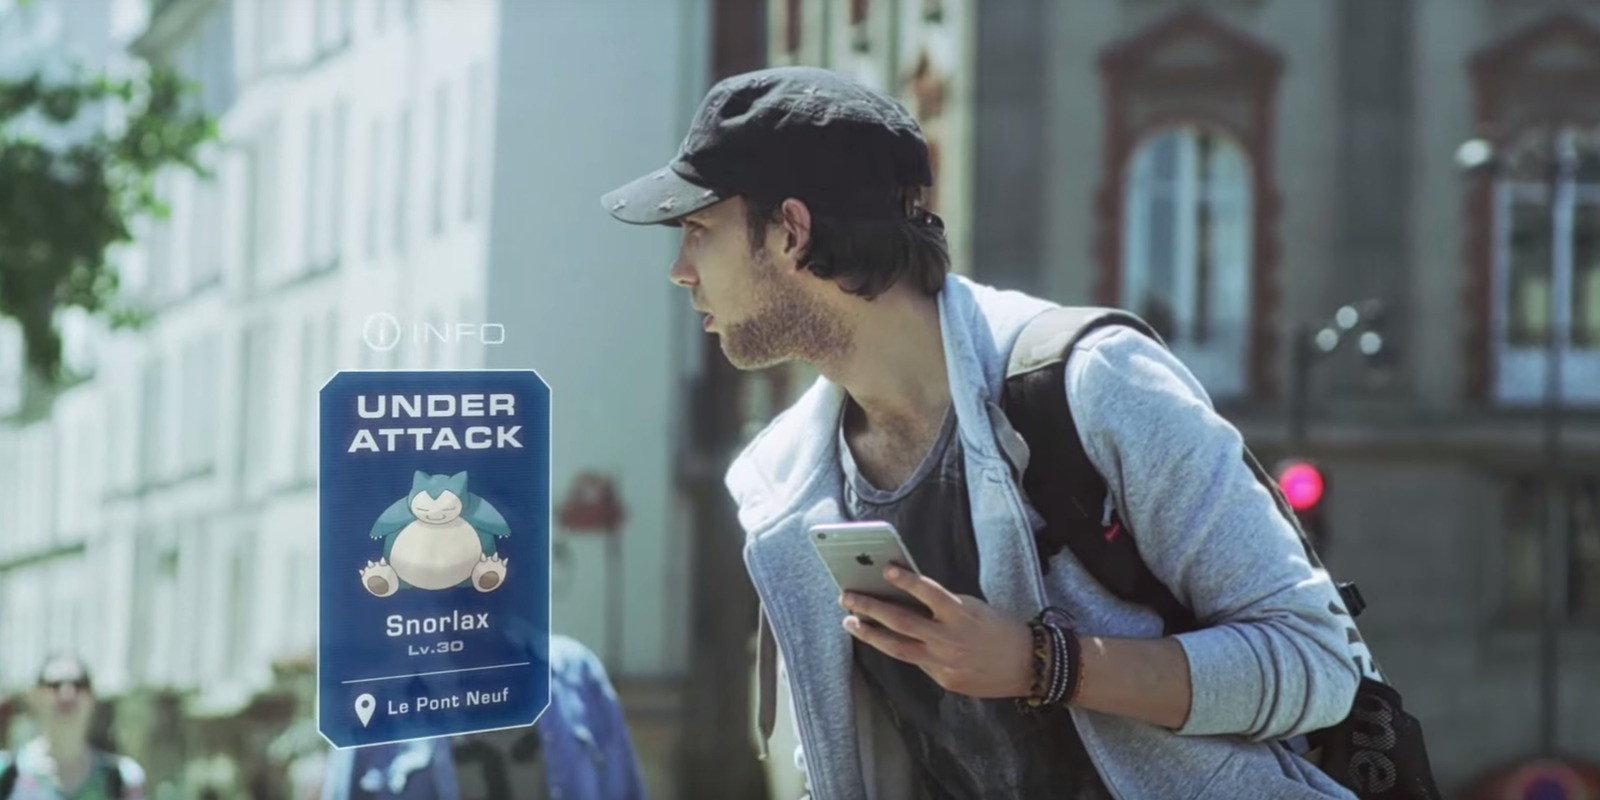 Pokémon Go for iOS update addresses Google account privacy issue, here's how to fix it